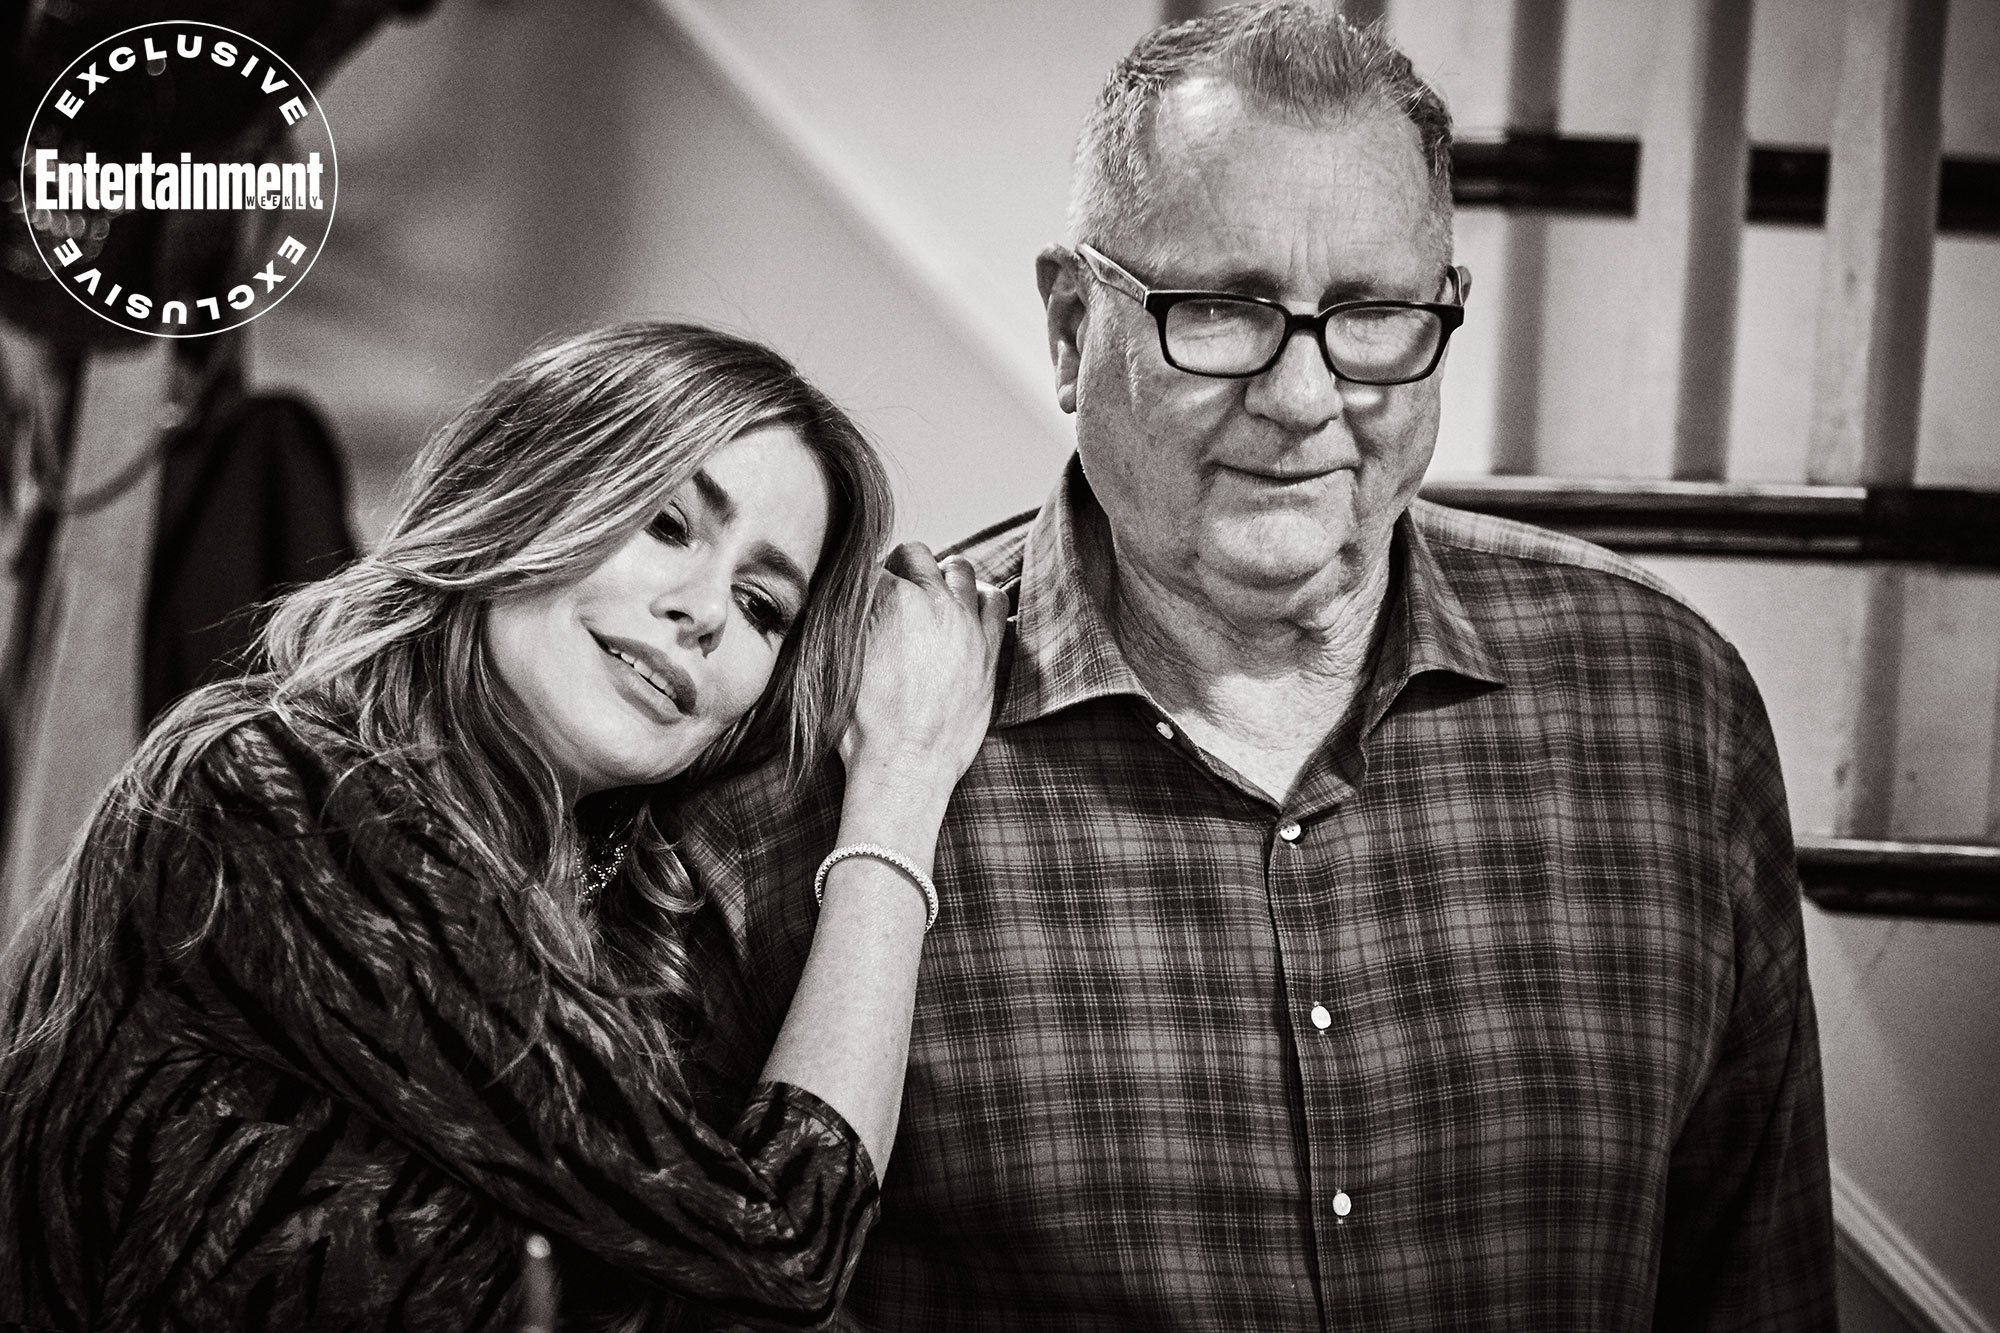 Sofia Vergara leans on Ed O'Neill for emotional support